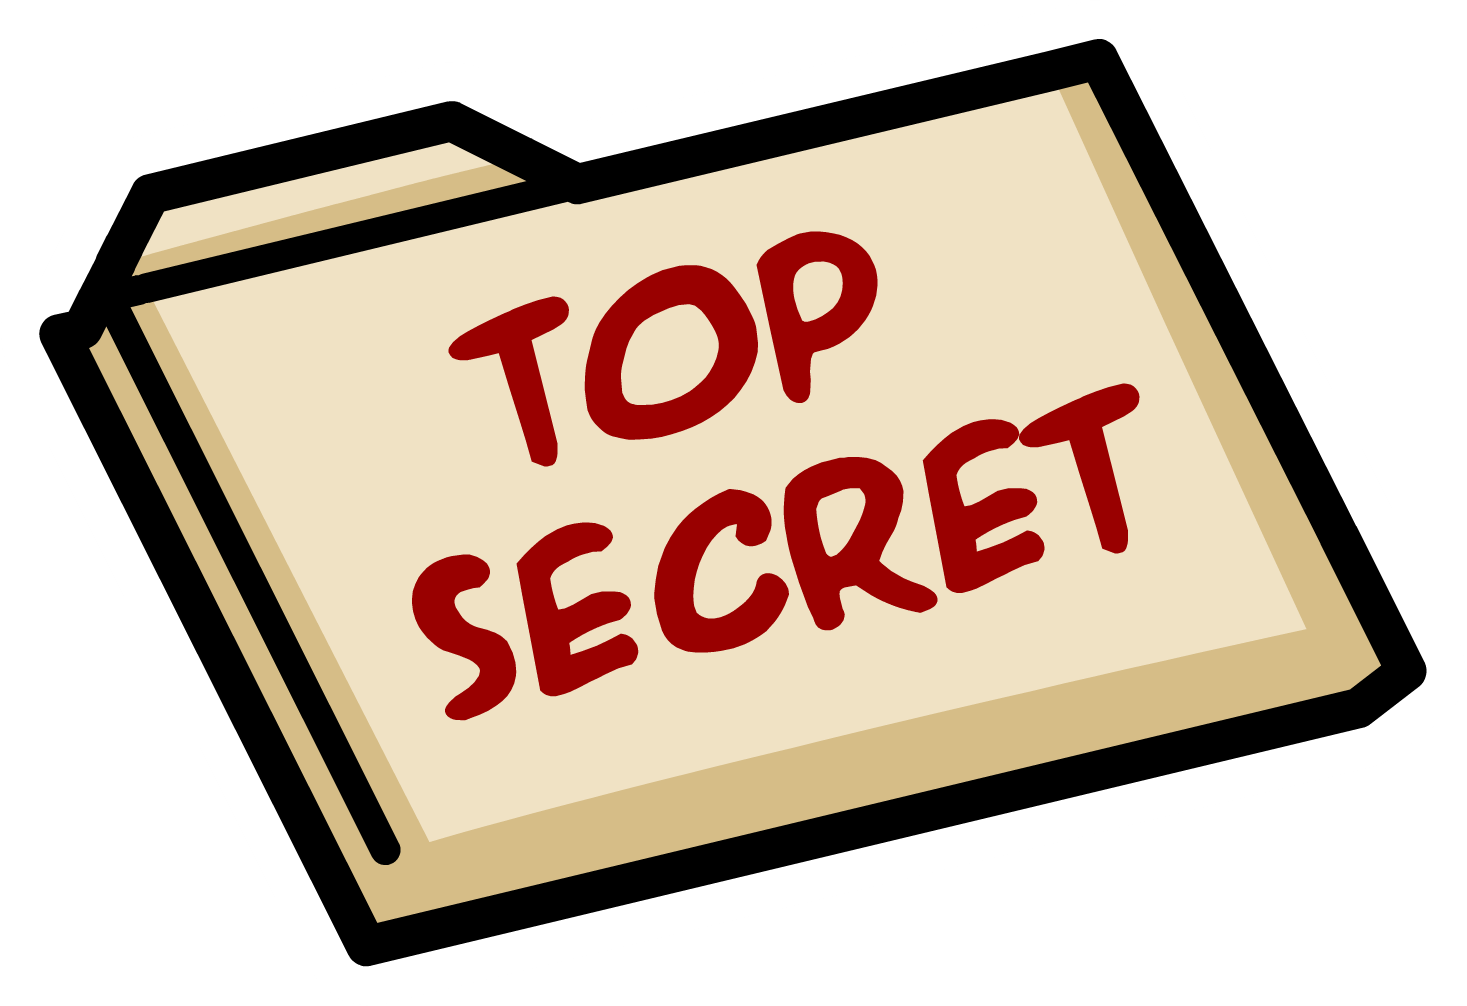 stamp clipart top secret #144193100